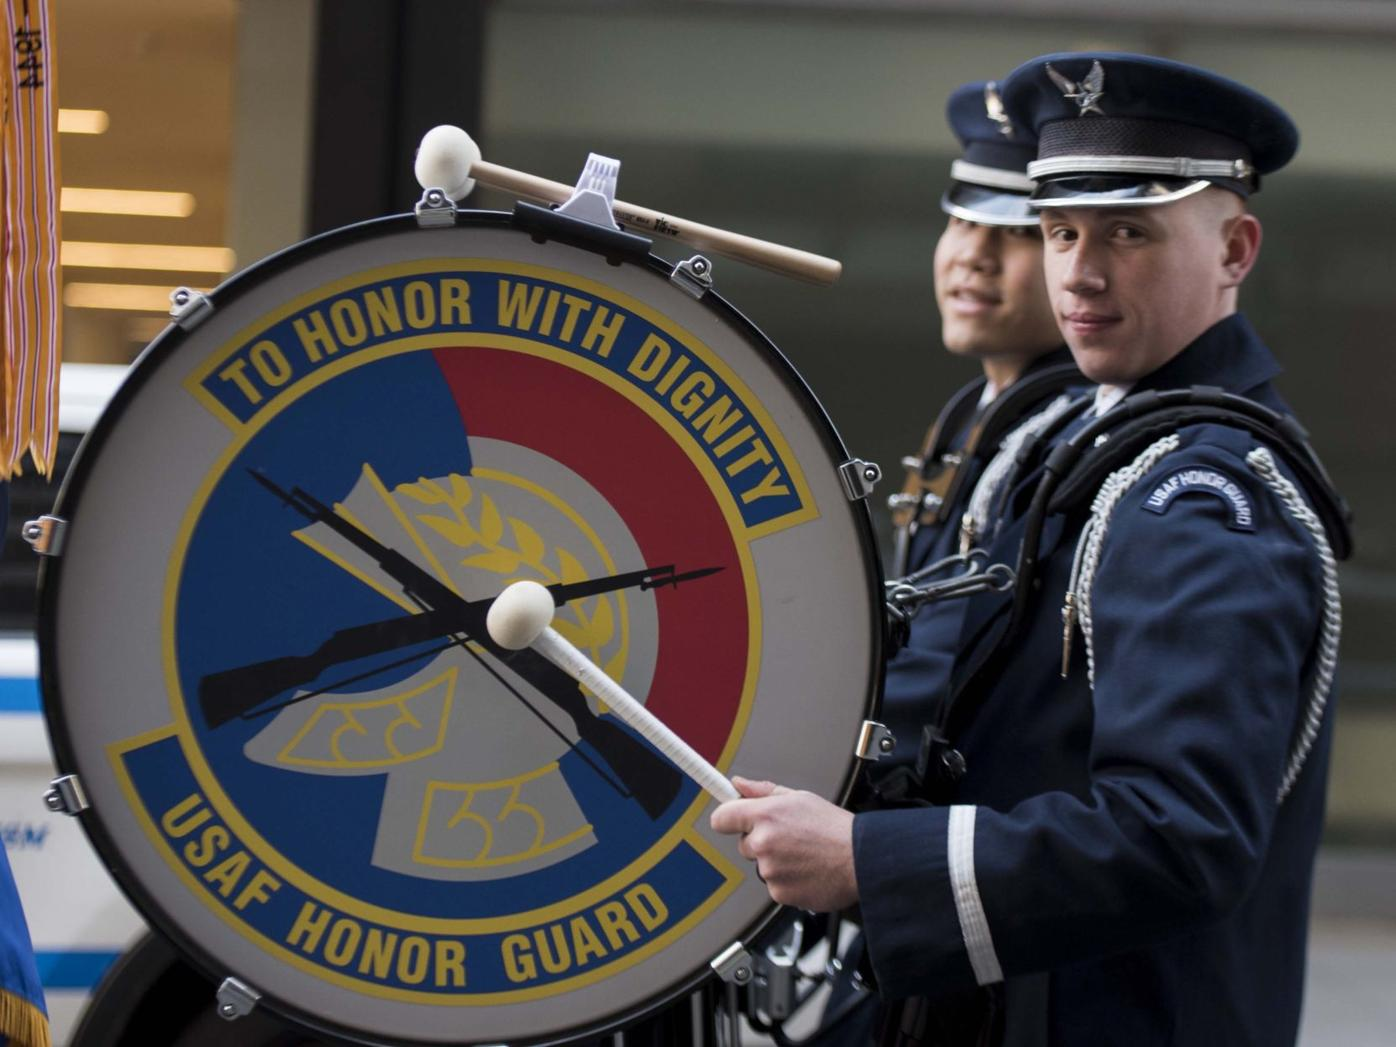 NYC St. Paddy's Day Parade features USAF Honor Guard